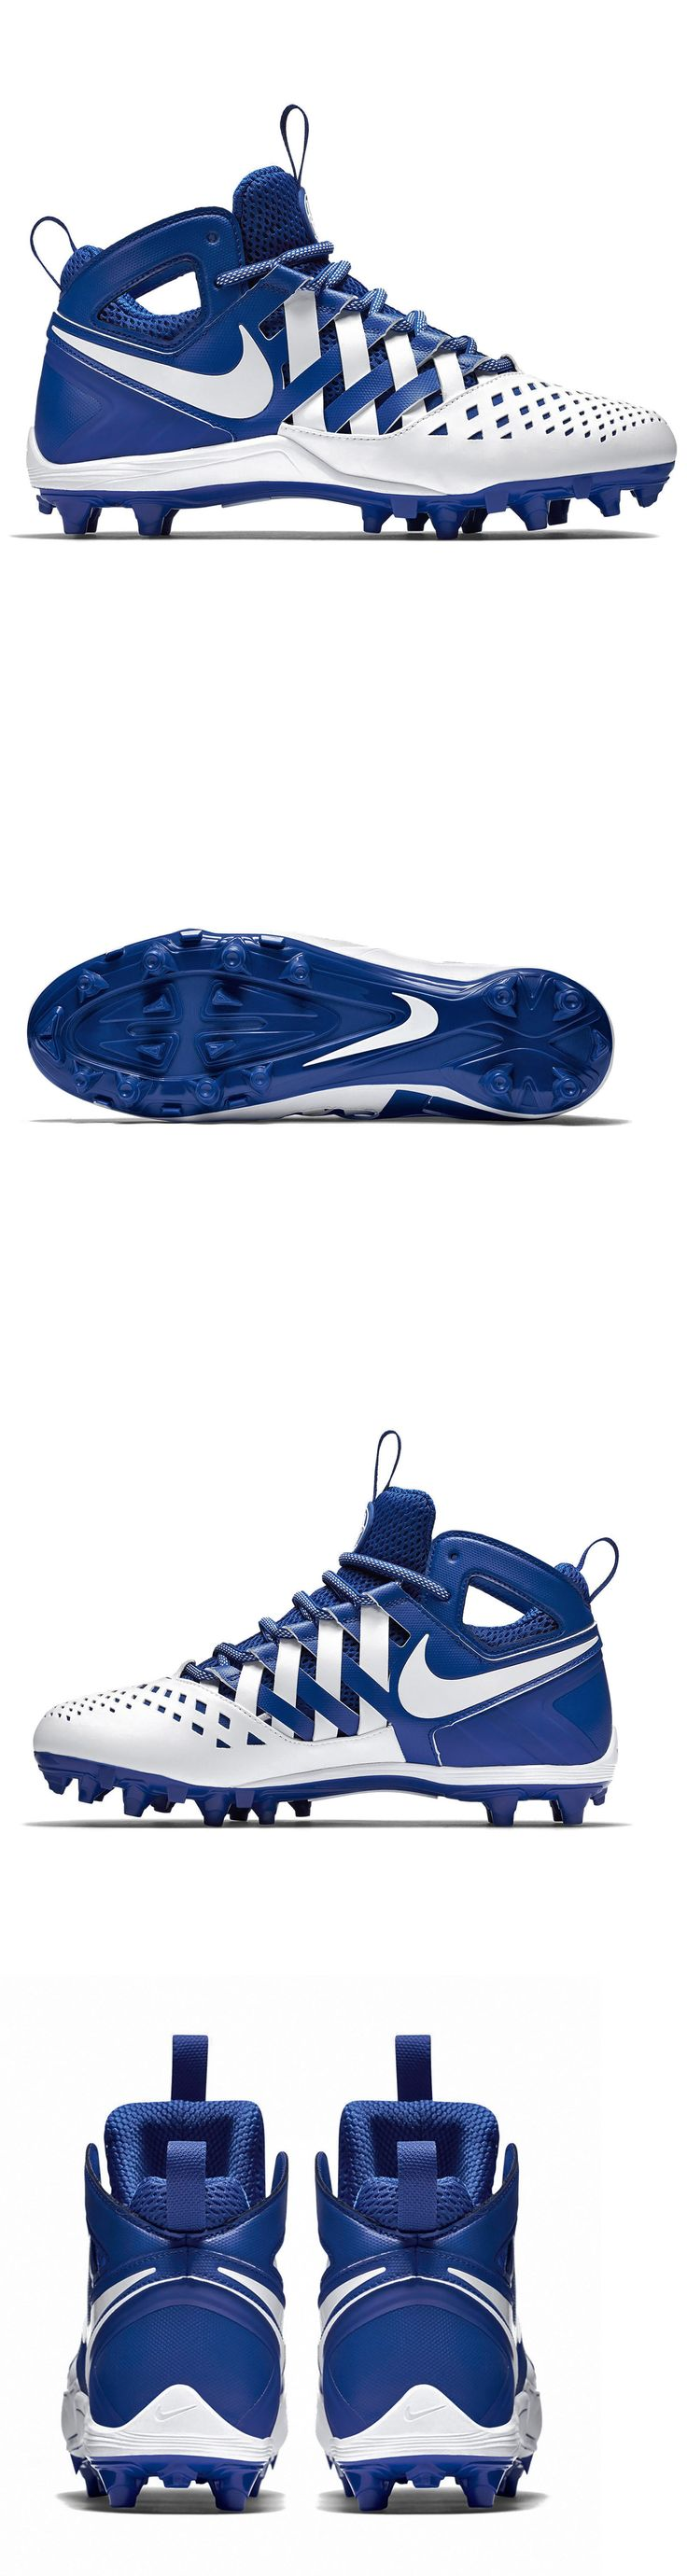 Footwear 159154: New Nike Huarache V Lax Mid Mens Lacrosse Cleats Football : White Blue -> BUY IT NOW ONLY: $33.81 on eBay!